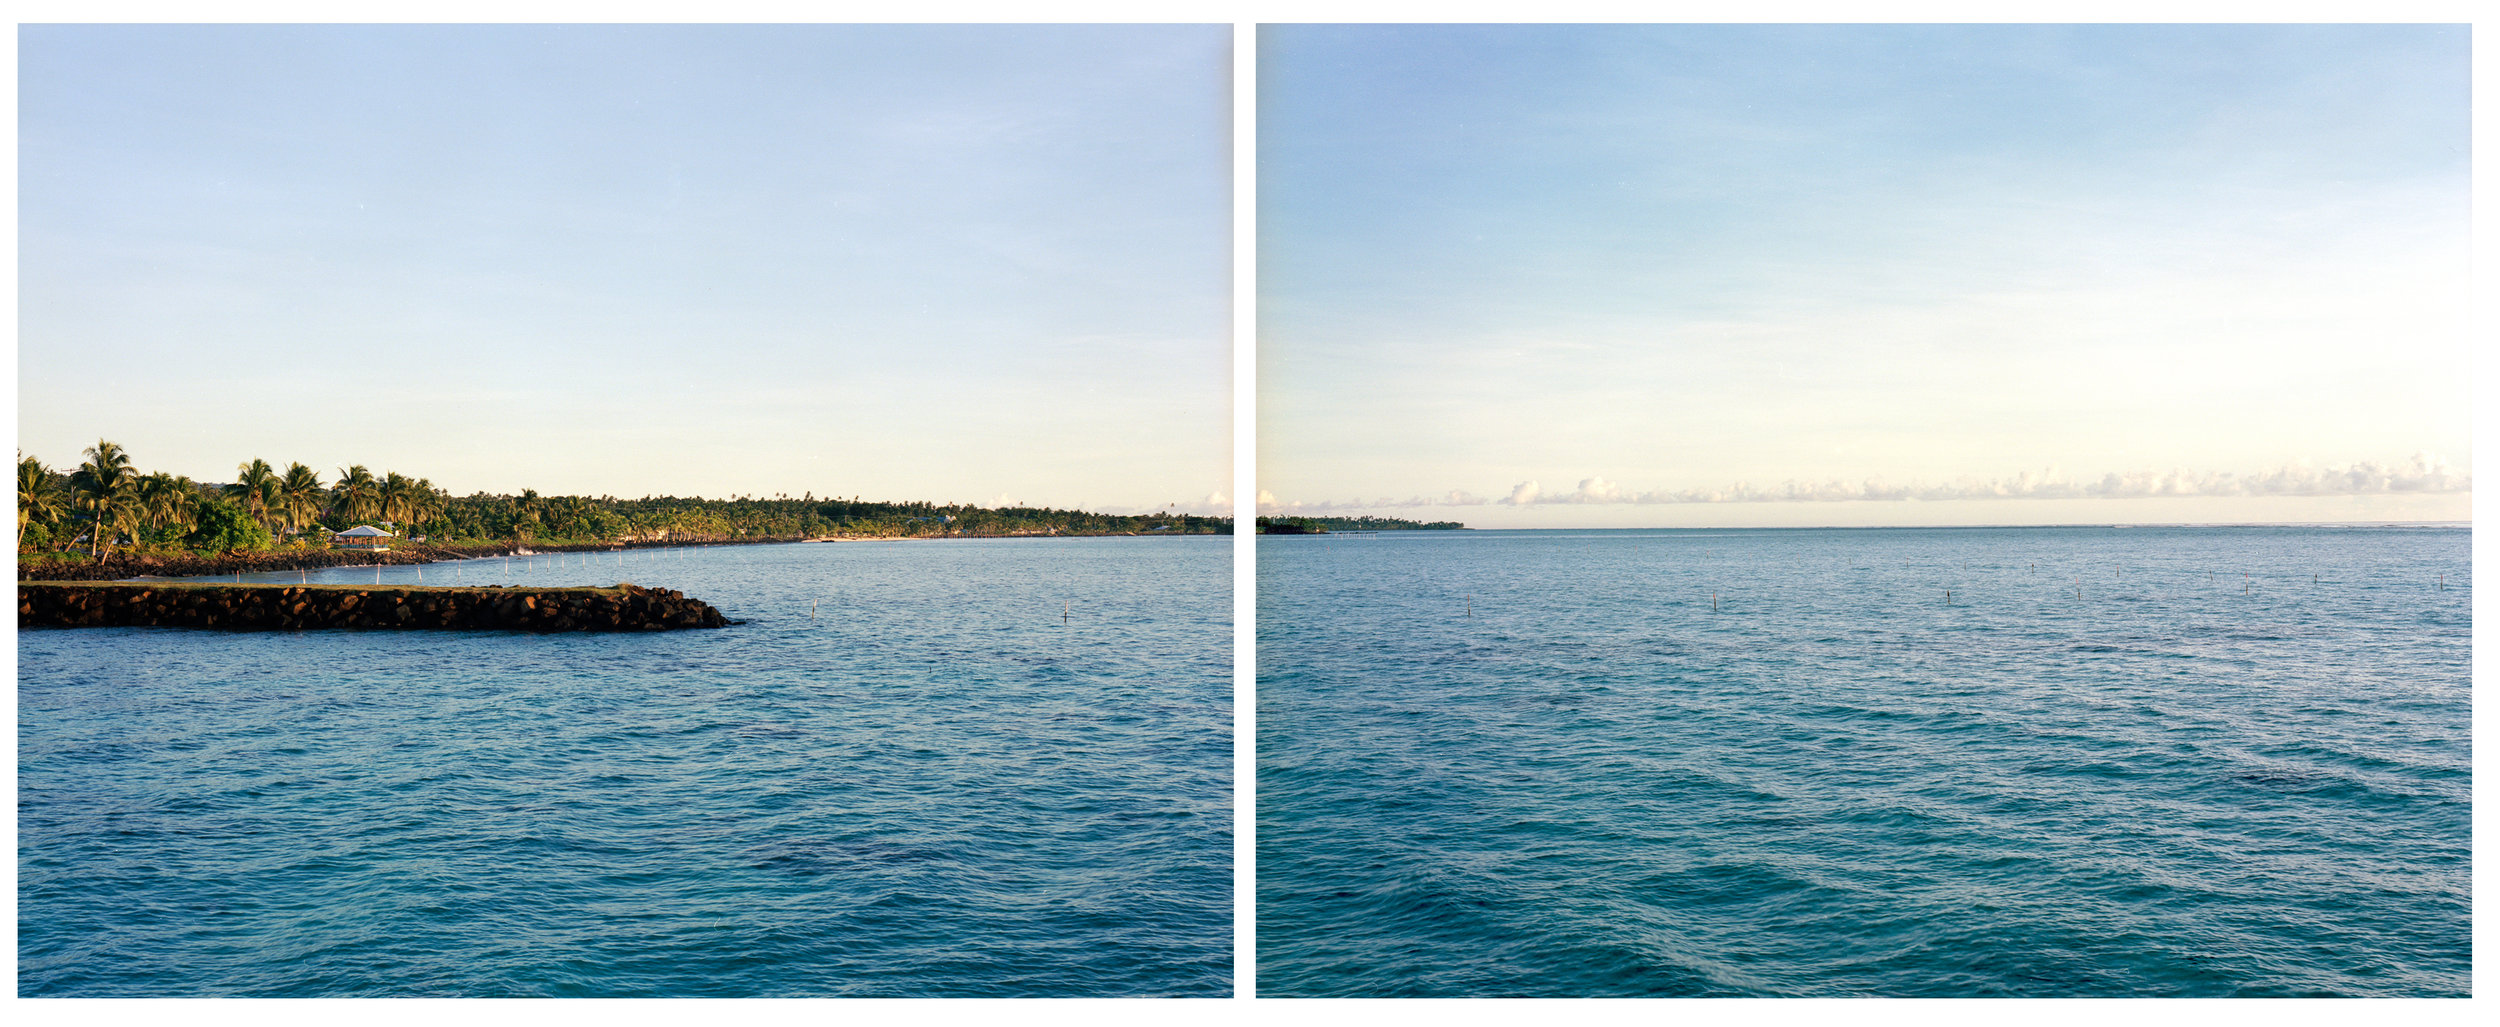 Looking to Tokelau, from Savai'i